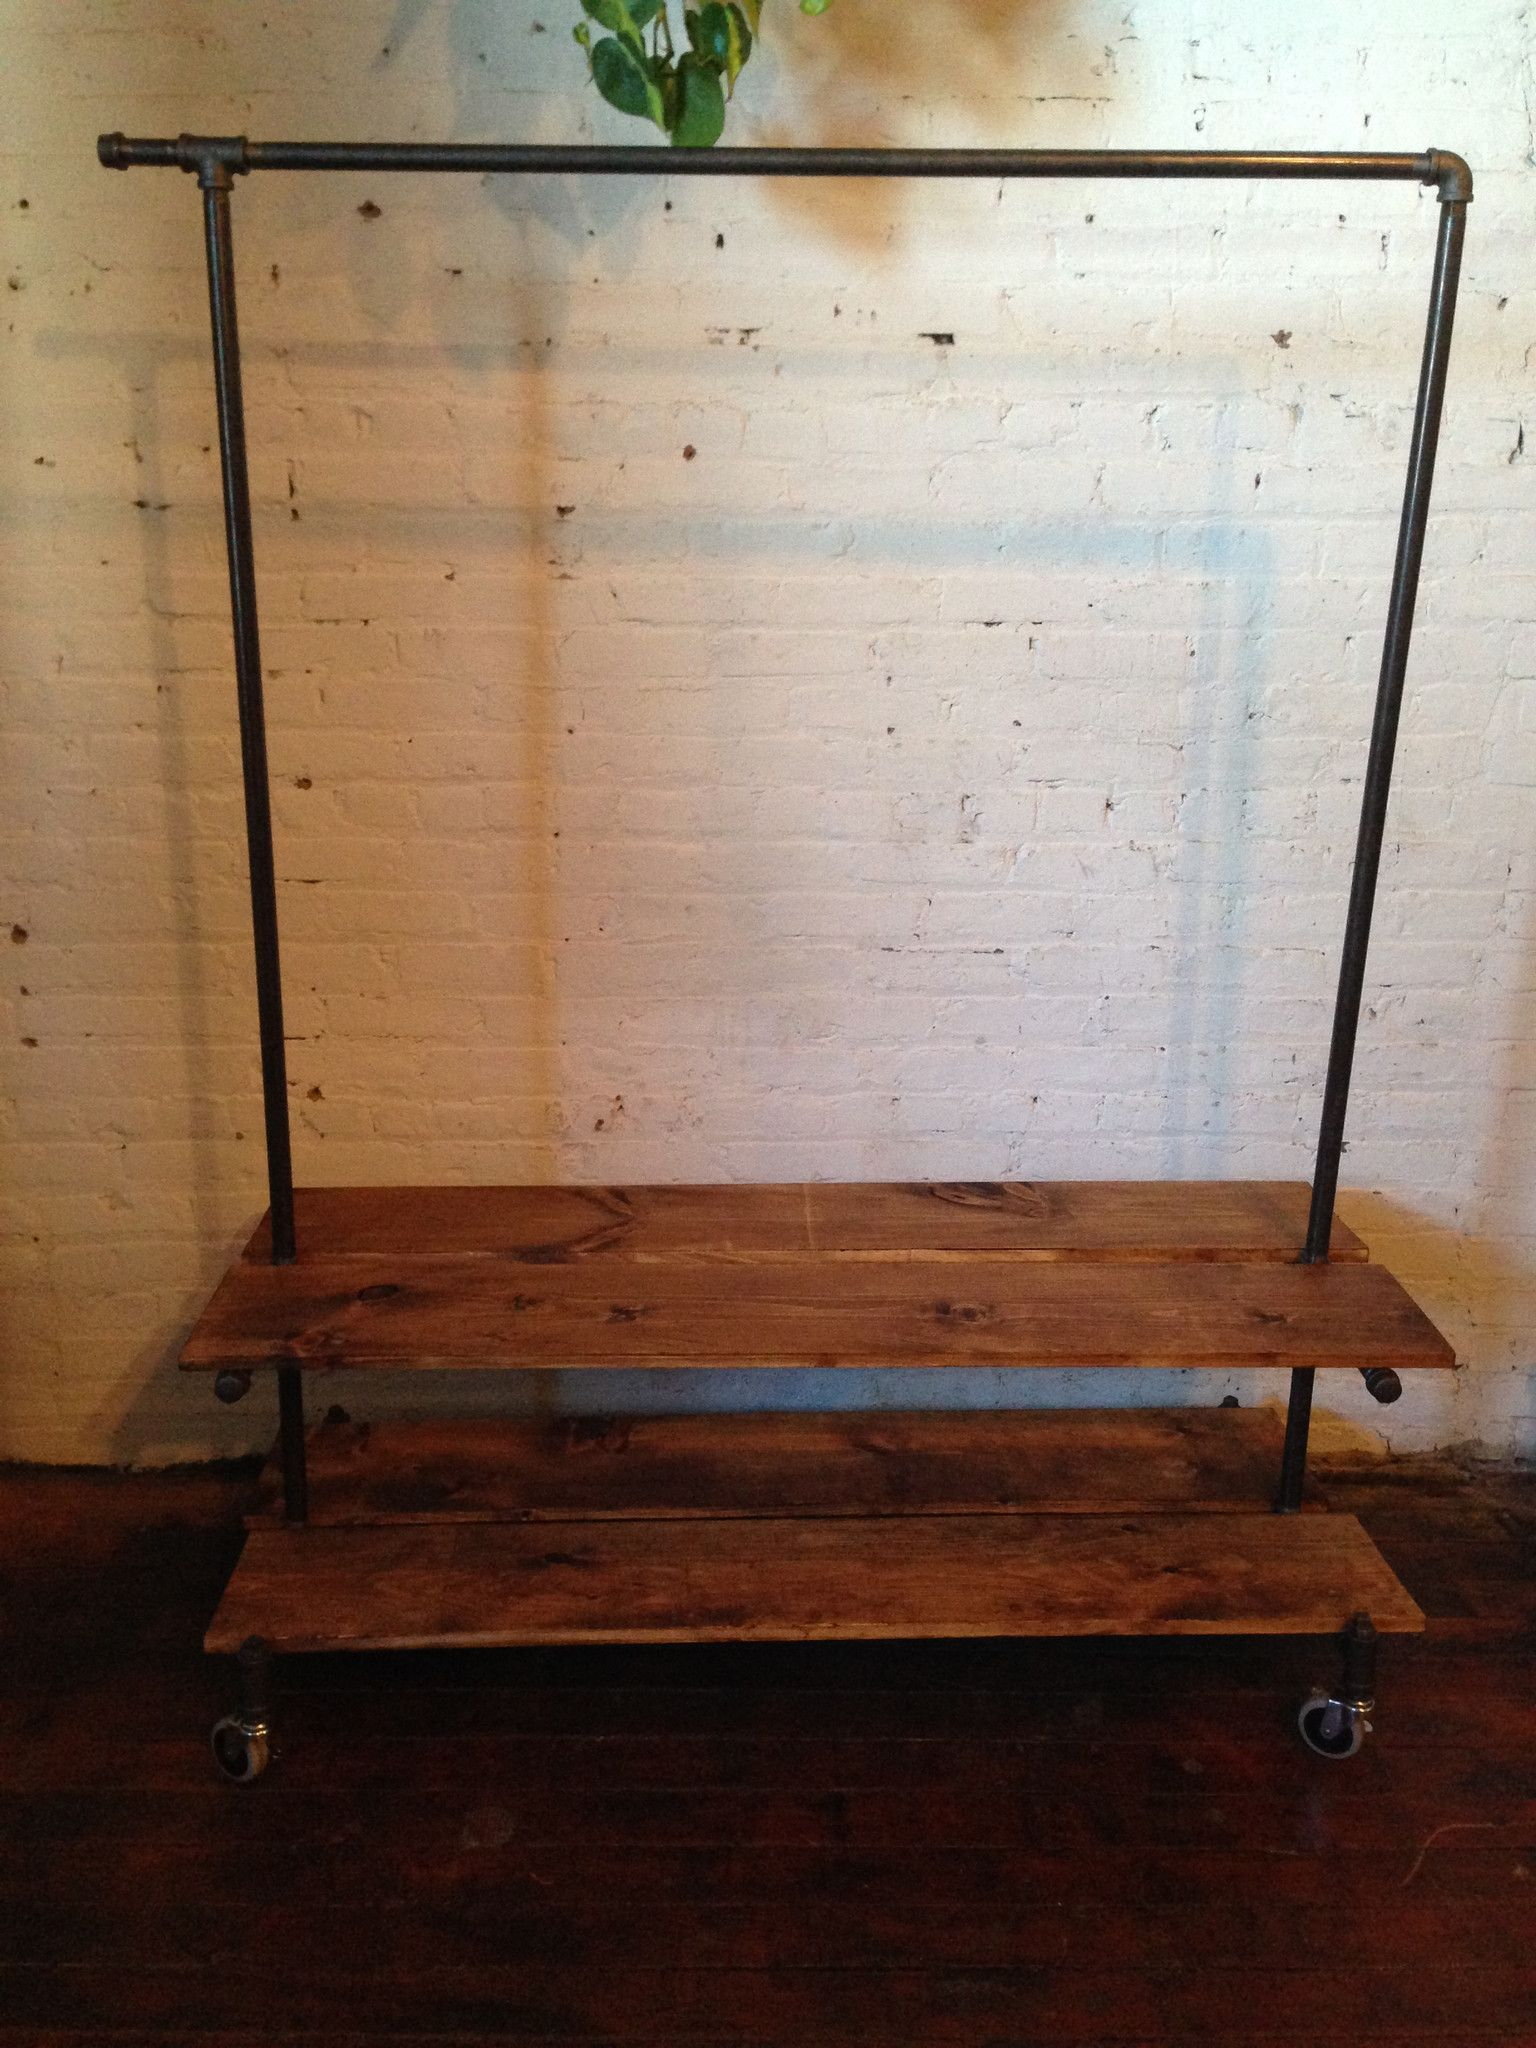 Industrial clothing rack with shelves shelving wheels and storage